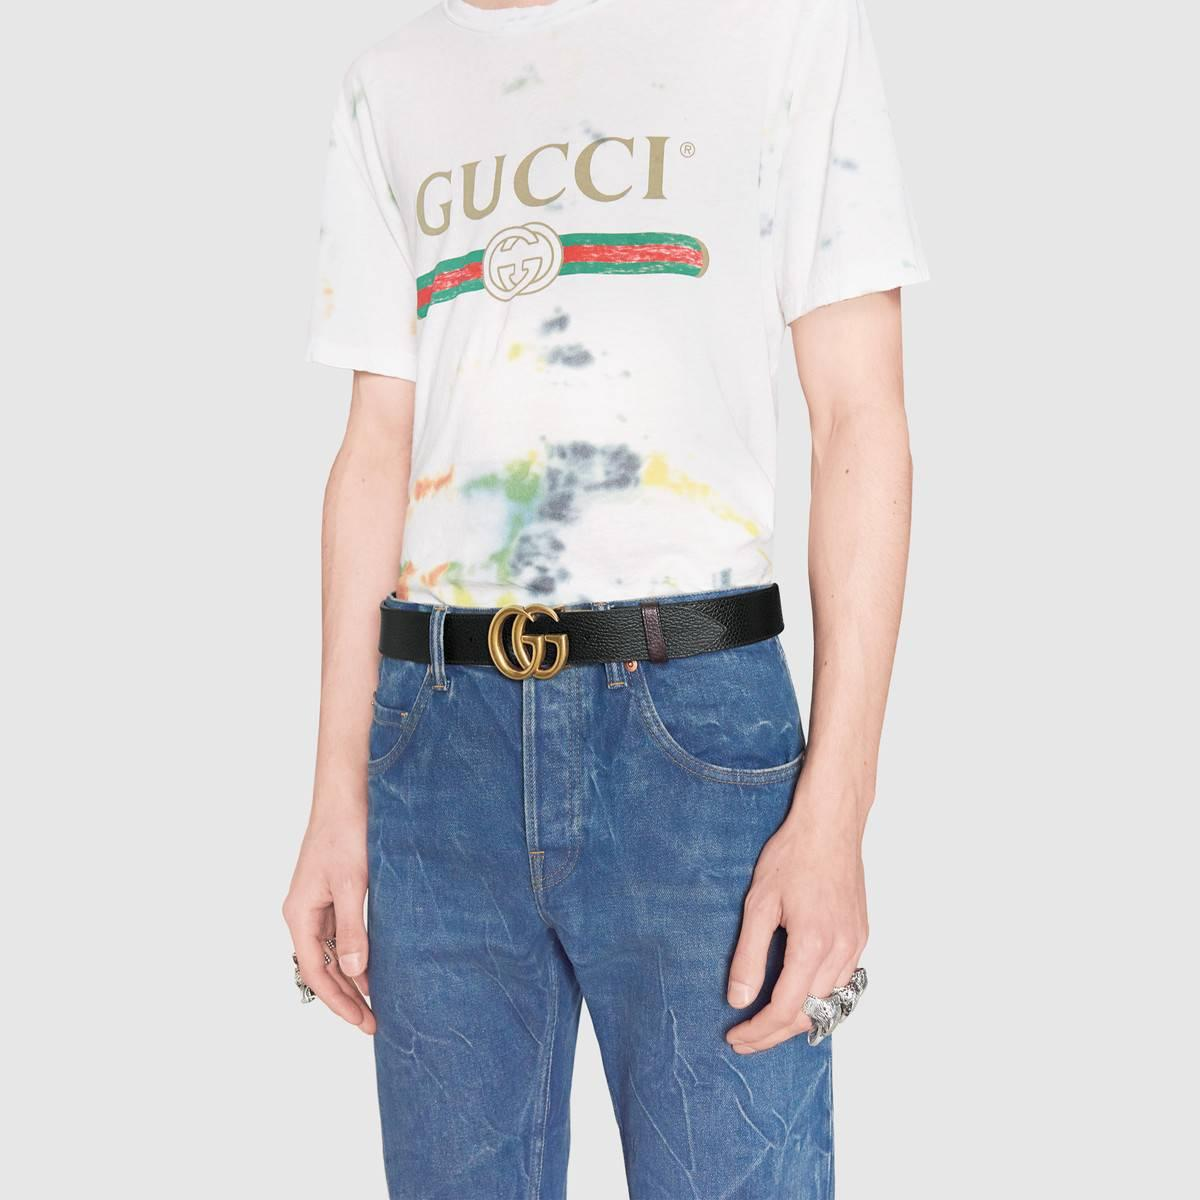 3df73a98d77 Gucci Reversible leather belt with Double G buckle Cheap Men ...